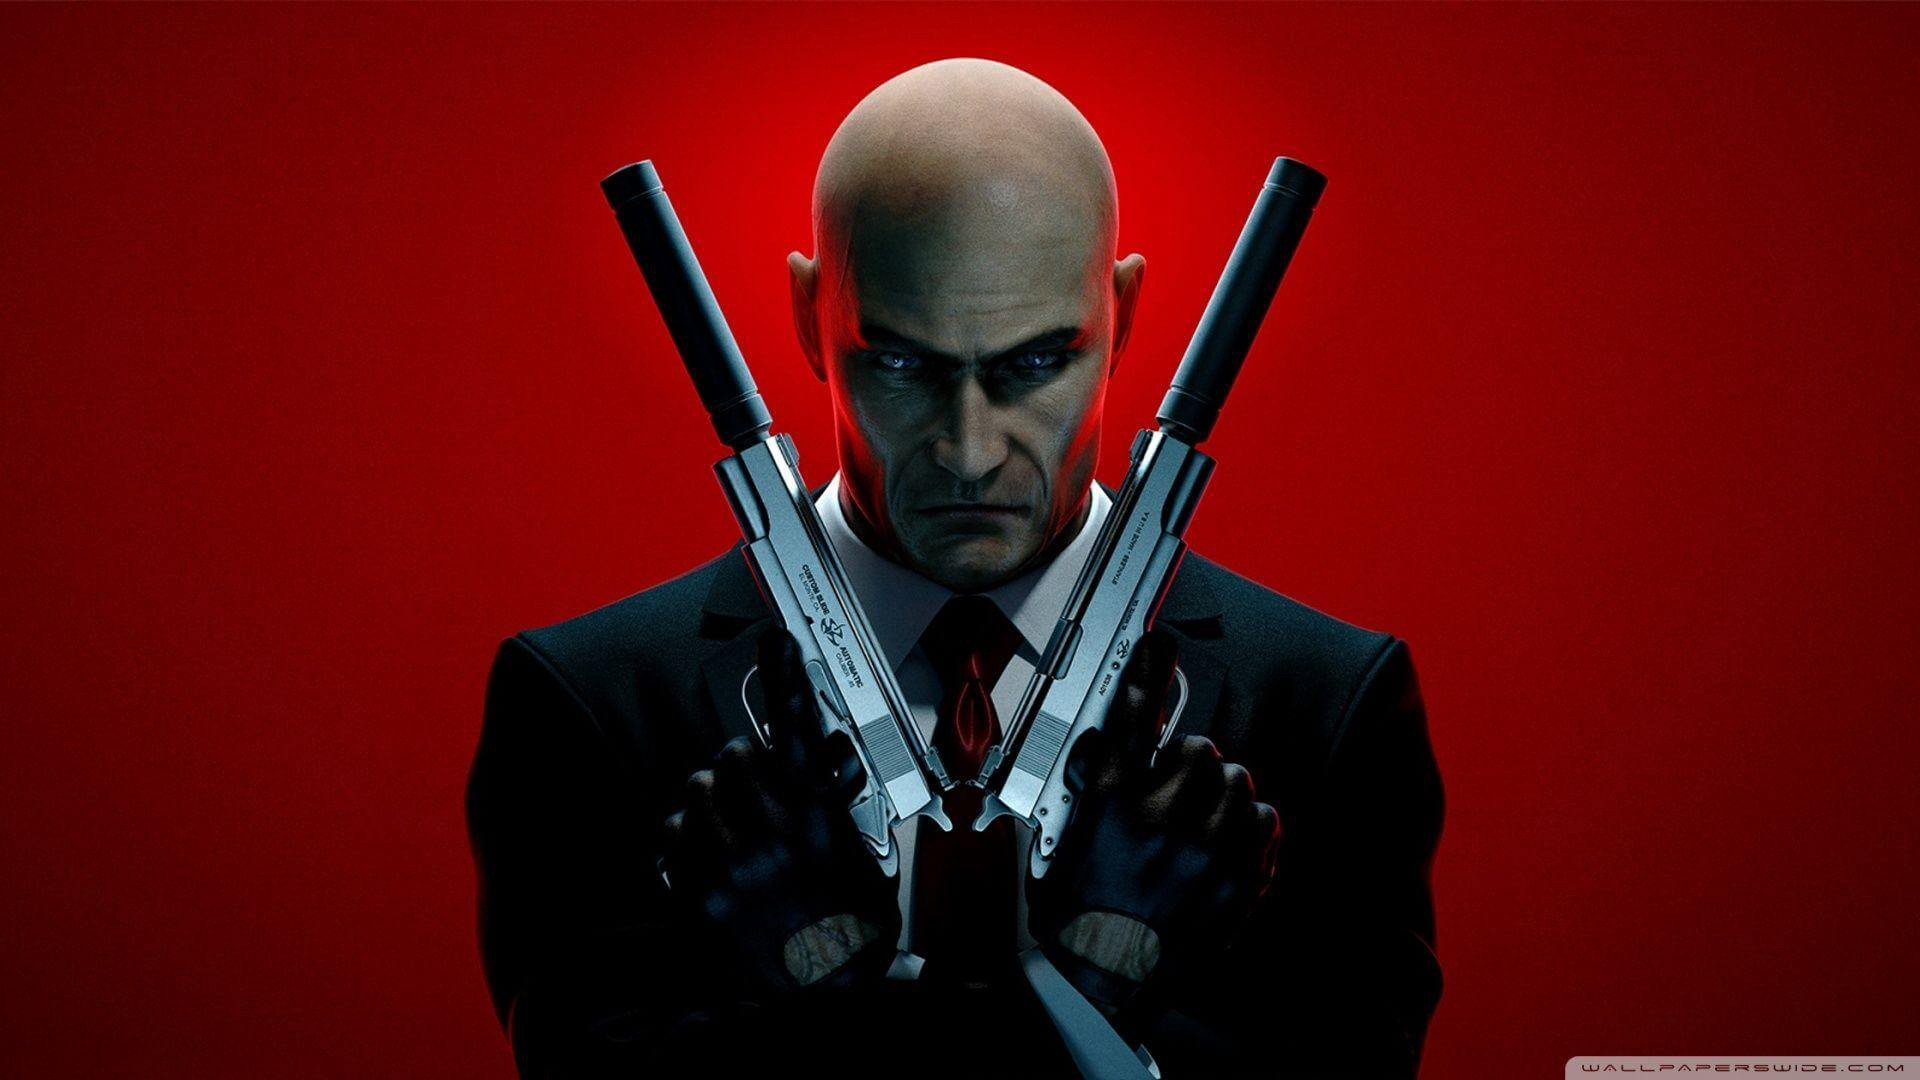 hitman 2 wallpaper 1920x1080